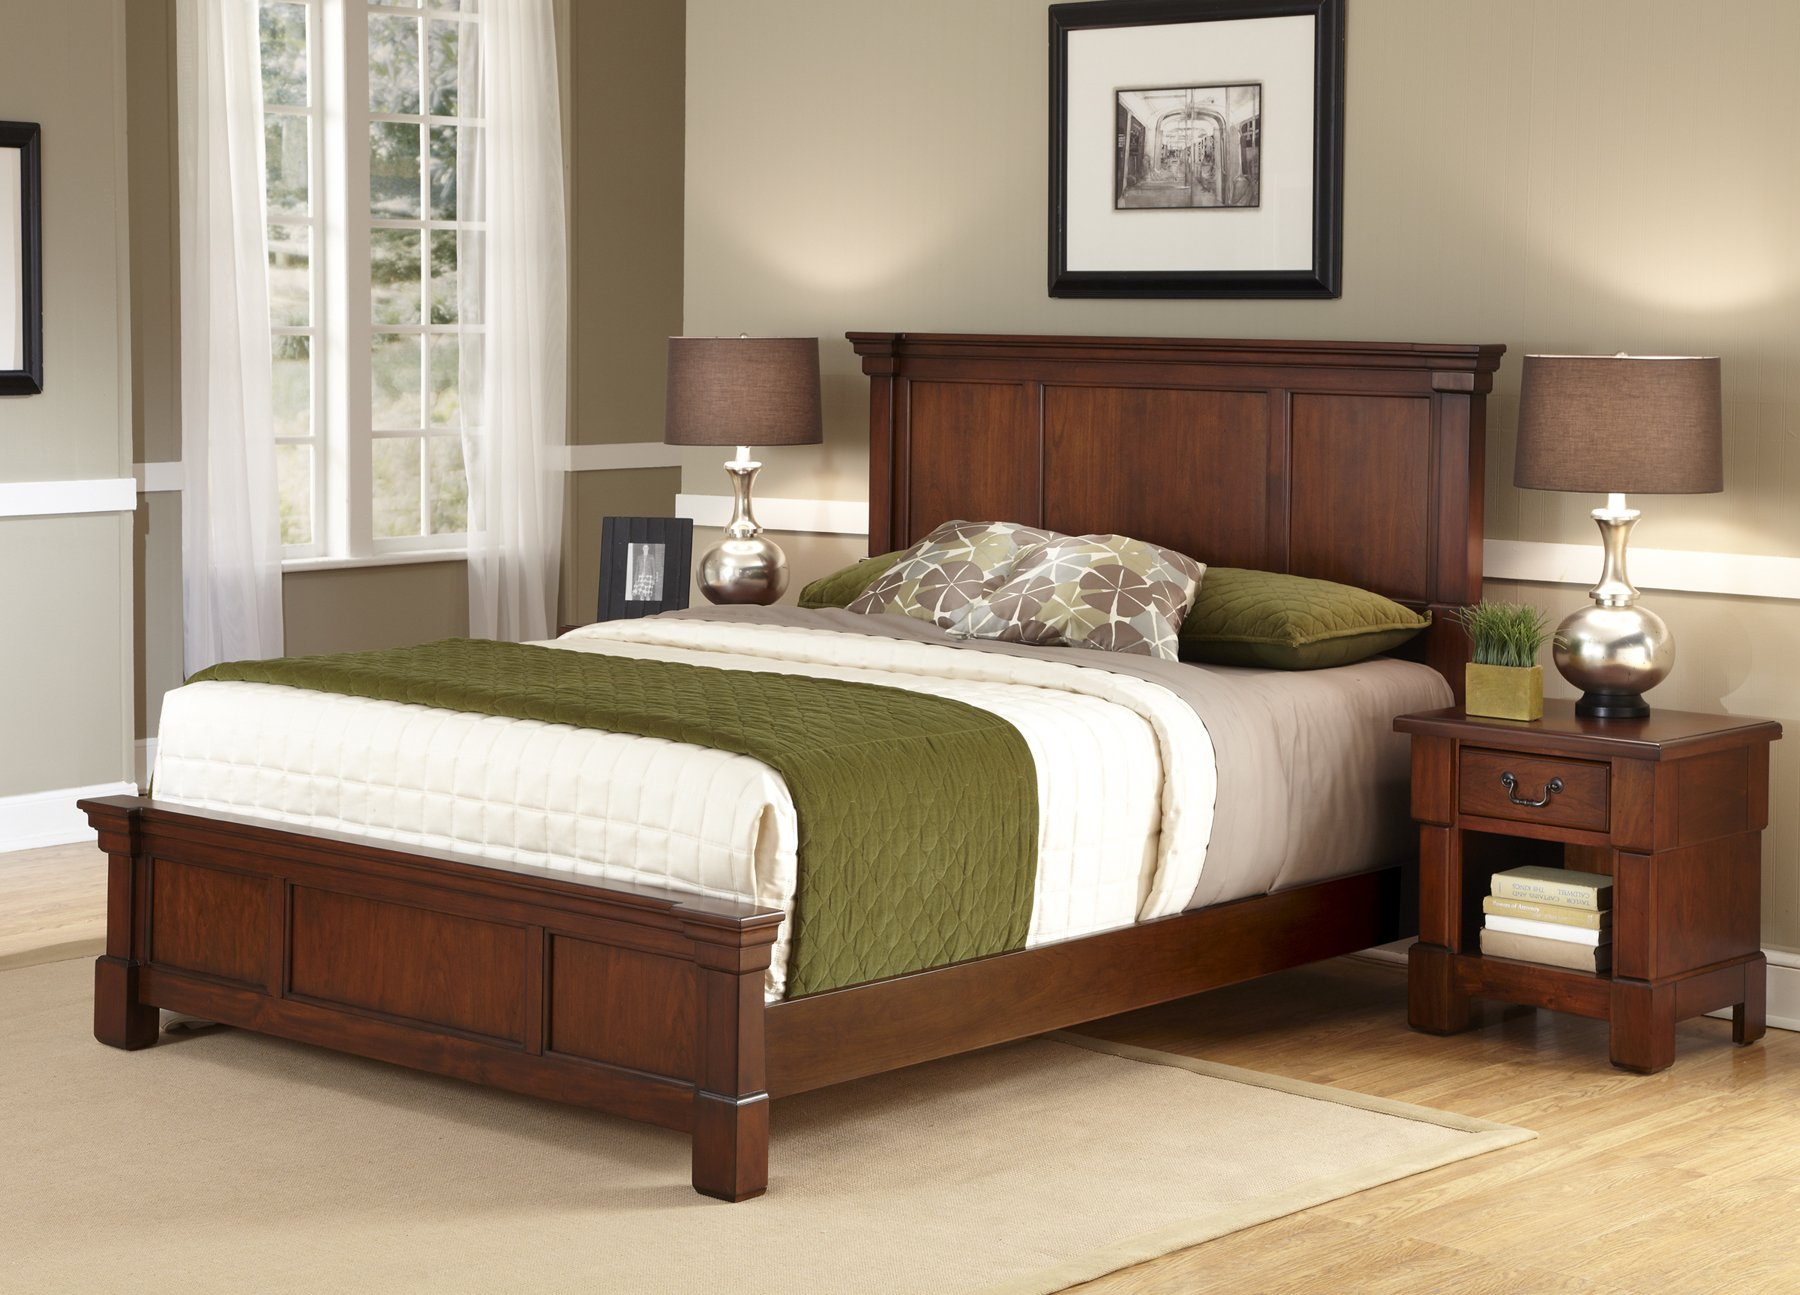 Aspen Rustic Cherry Queen Bed & Night Stand by Home Styles by Home Styles